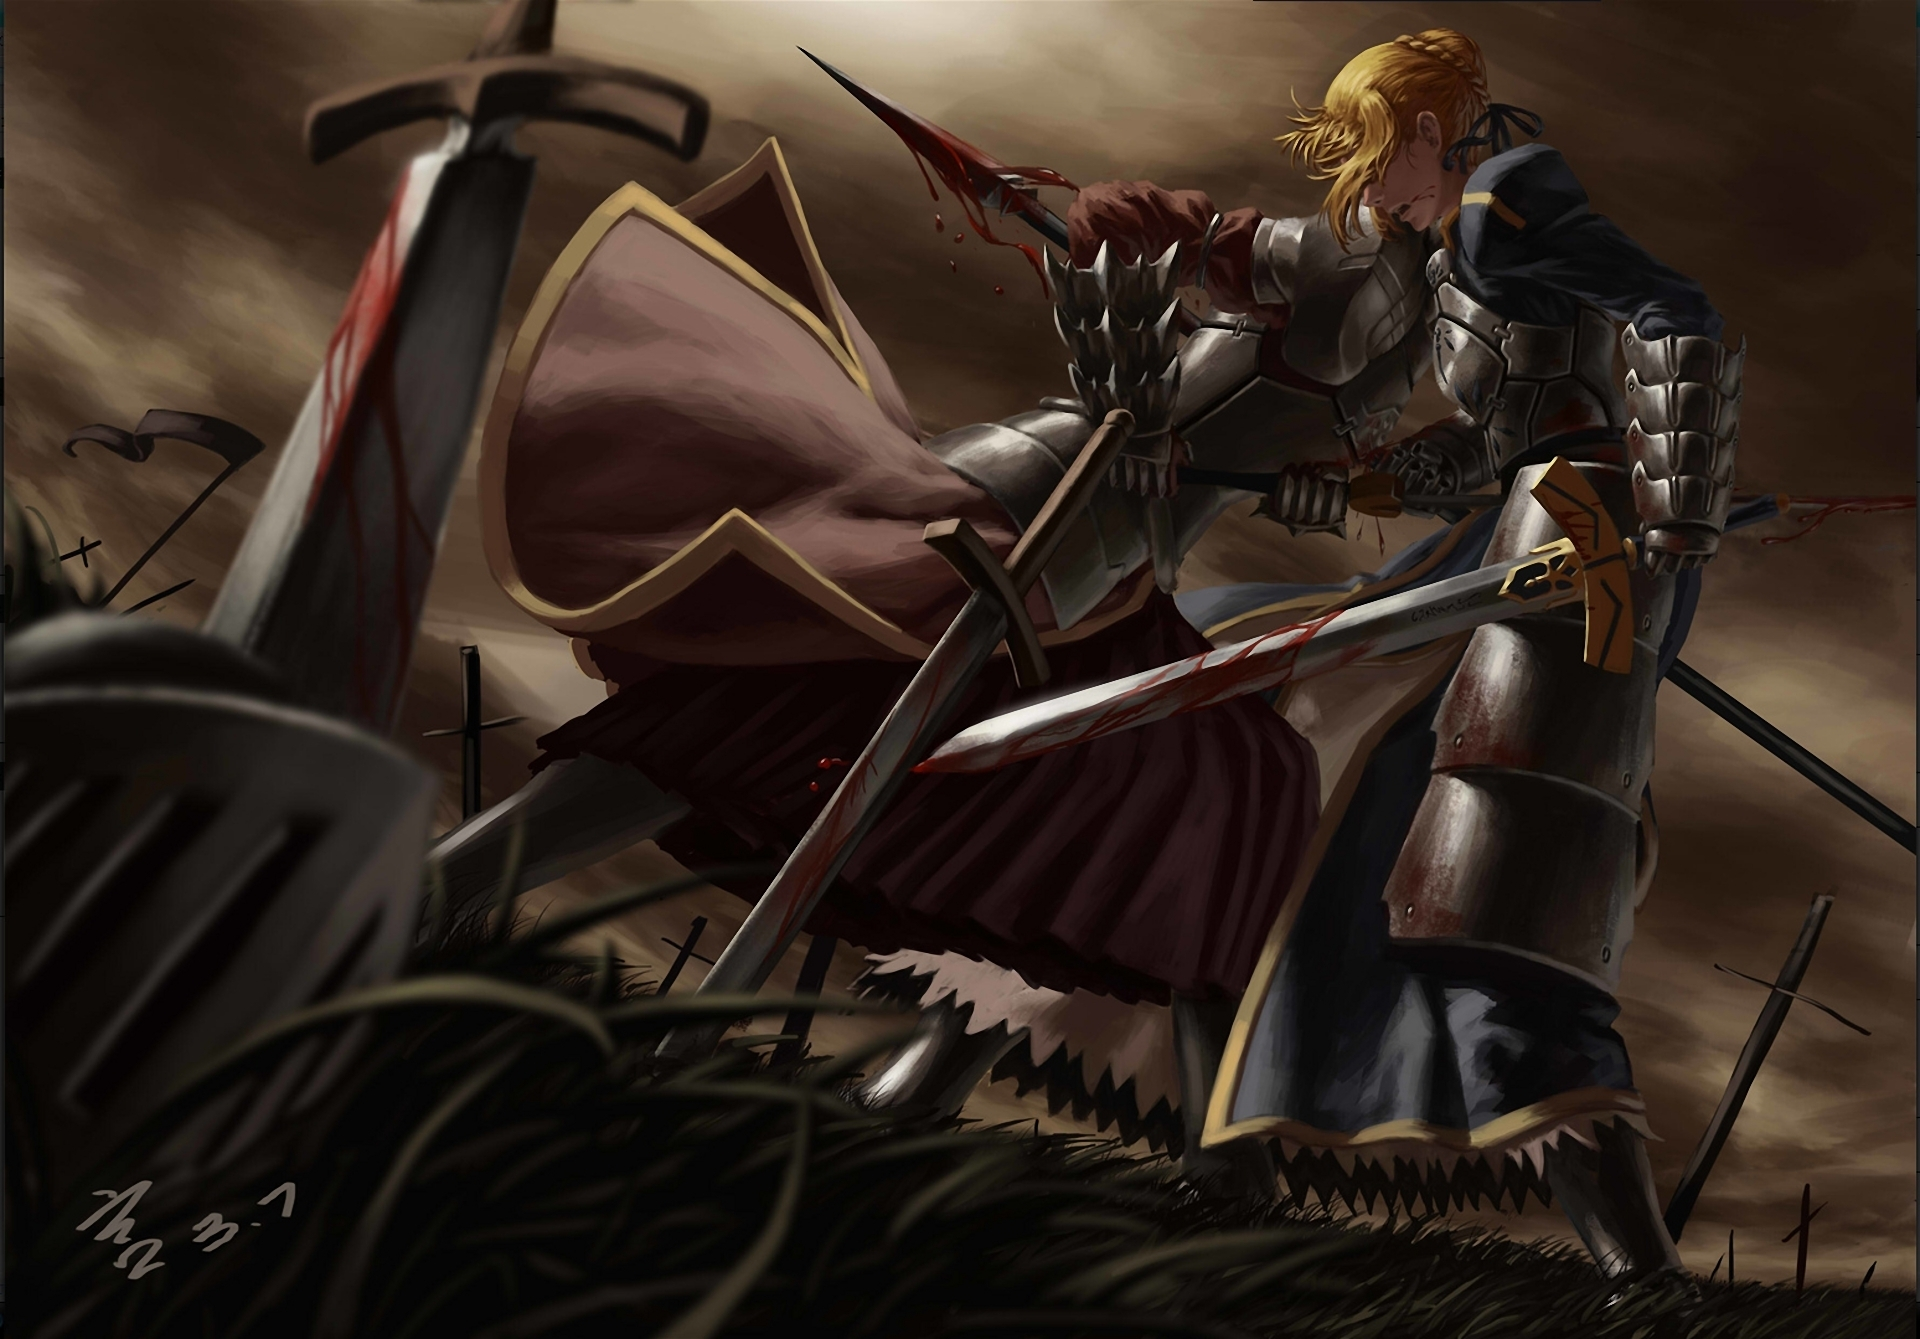 Anime FateZero FateStay Night Mordred Saber Weapon Sword Spear Blood 1920x1339